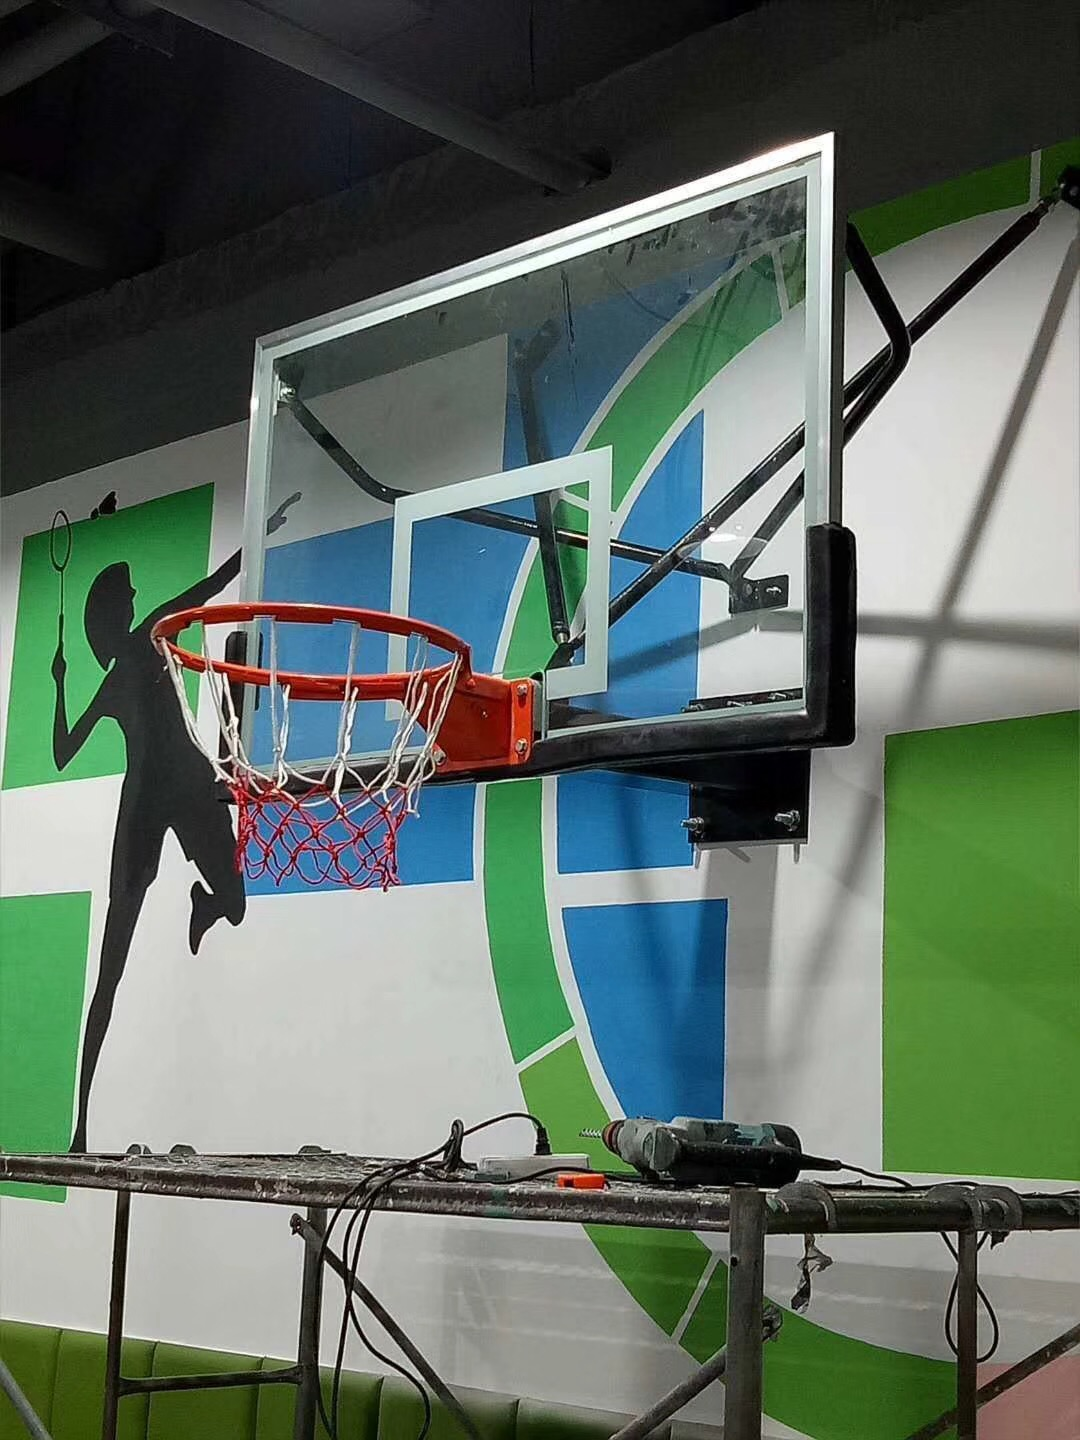 XOT-7005 挂壁式篮球架 Wall-Mounted Basketball Stand